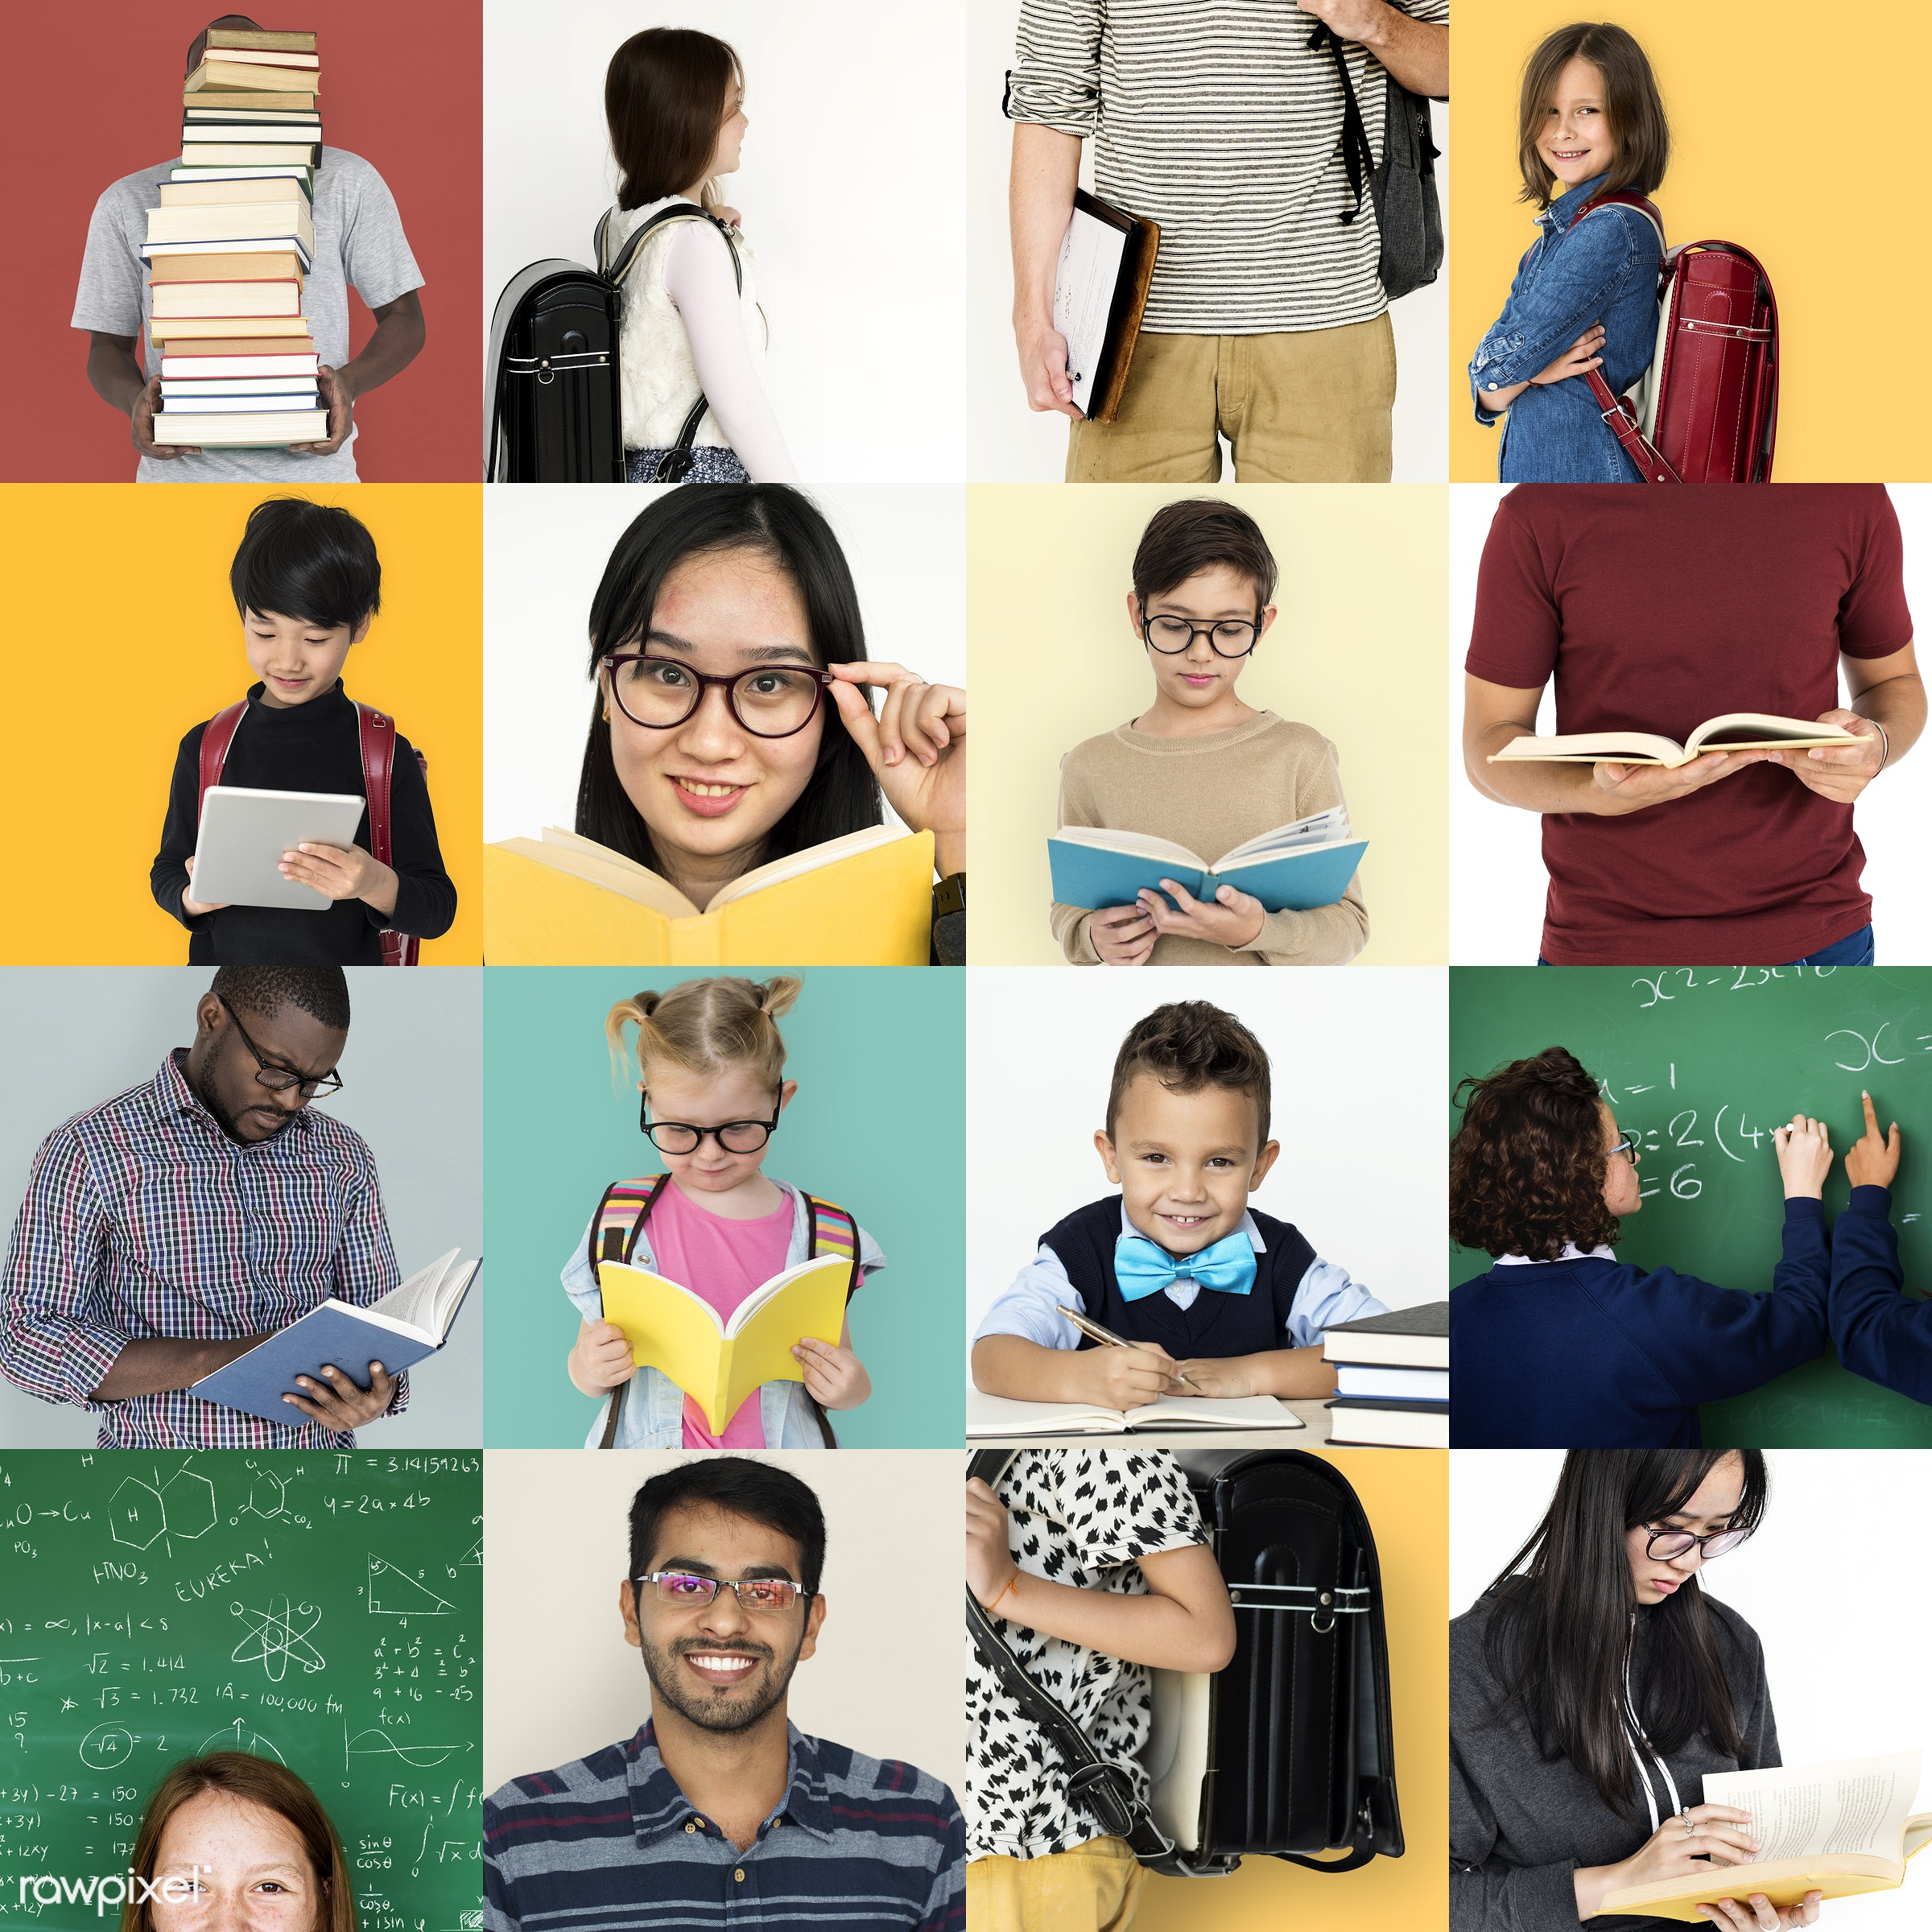 Set of portraits of people with learning concepts - intelligent, skills, studio, person, wisdom, study, people, course,...